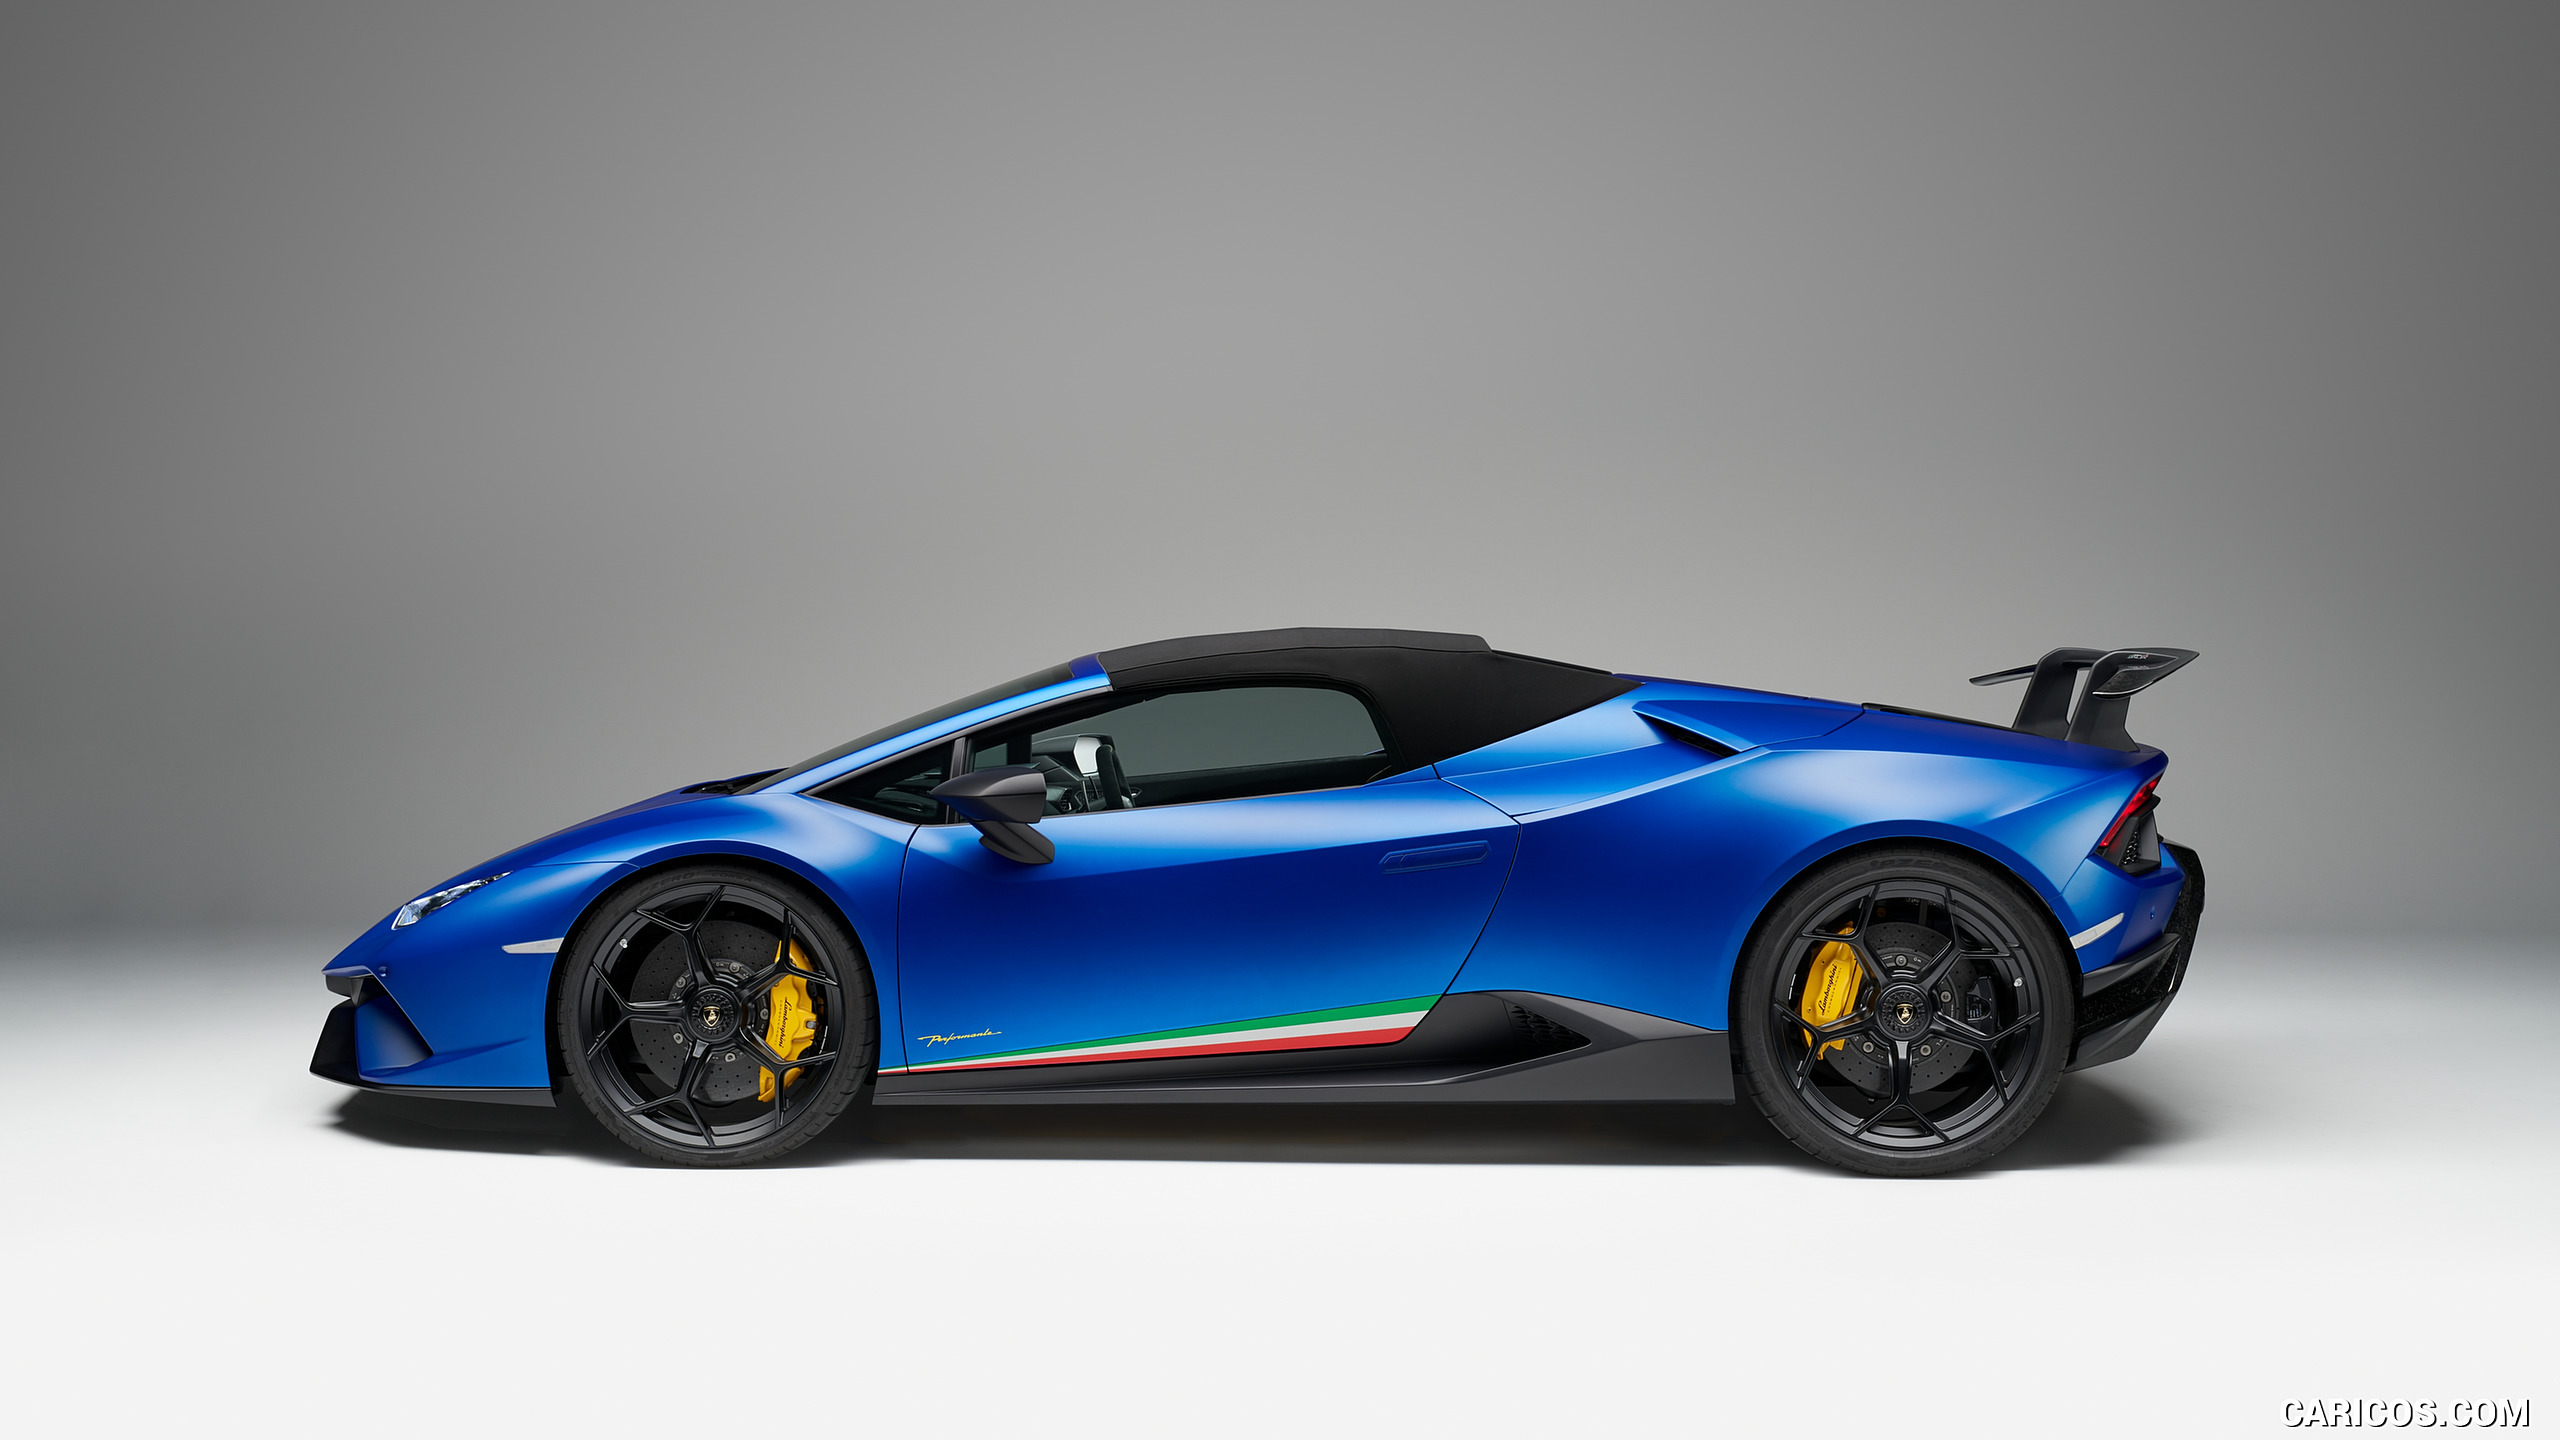 2019 Lamborghini Huracn Spyder Performante   Side HD Wallpaper 14 2560x1440